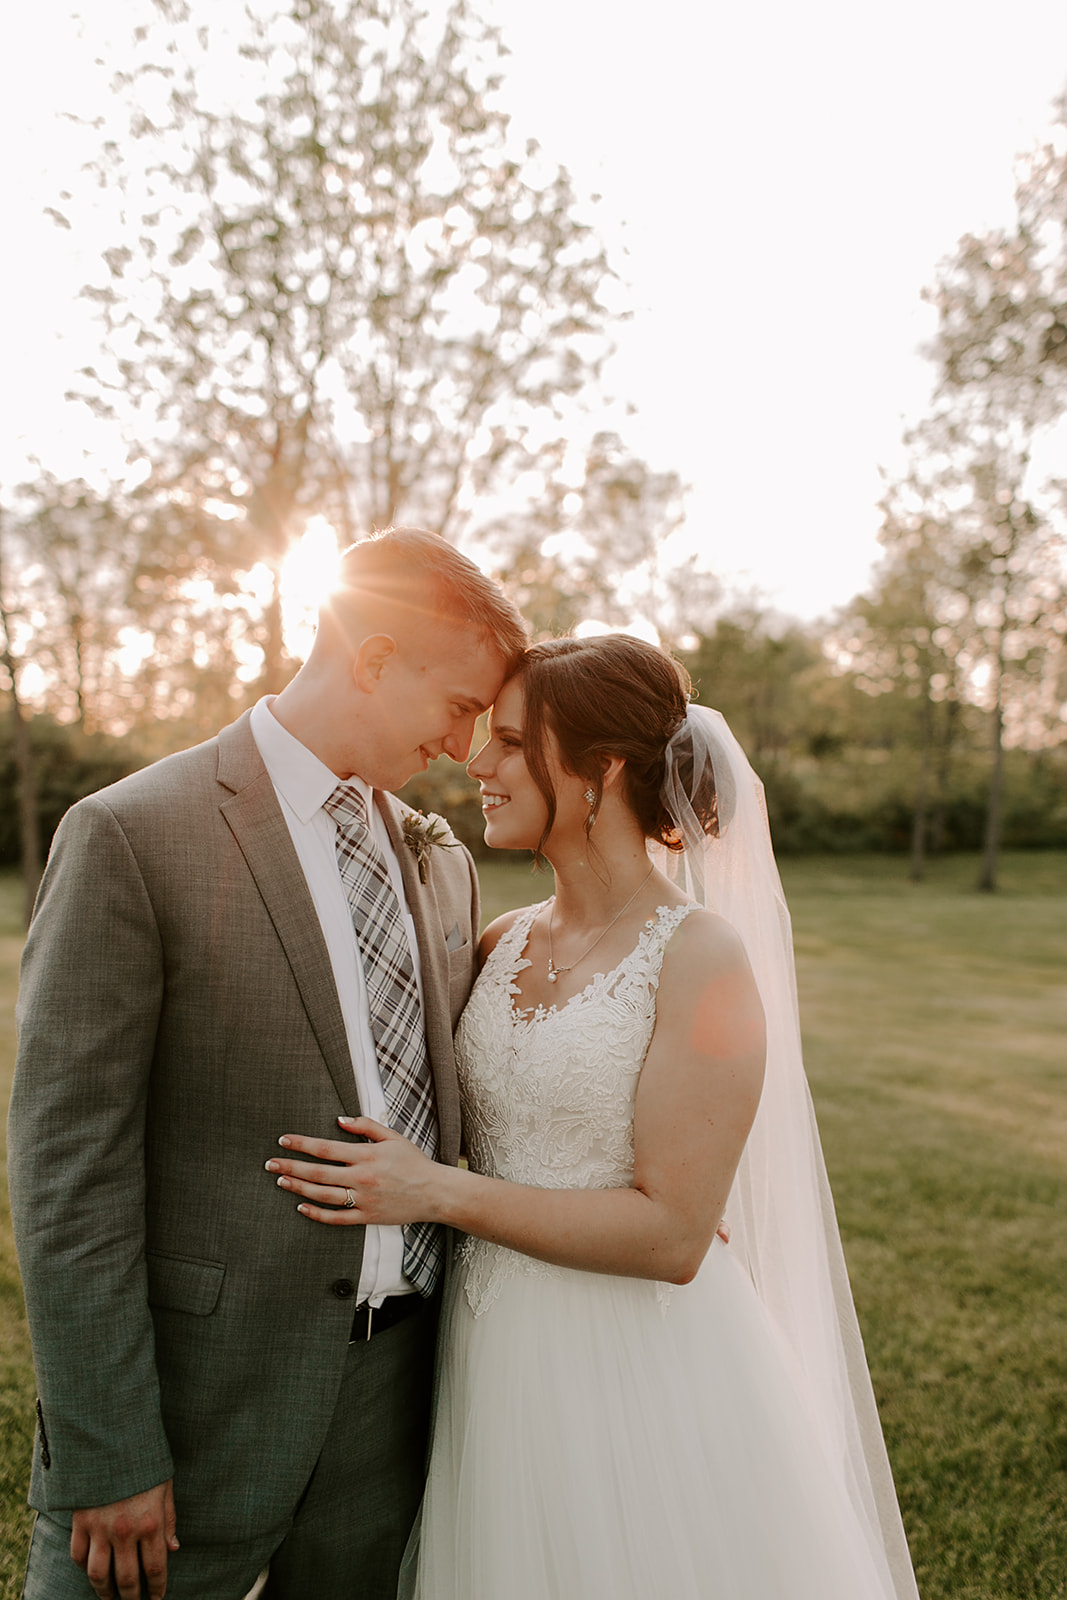 Kendra_and_Mattew_Indiana_Wedding_by_Emily_Wehner-903.jpg